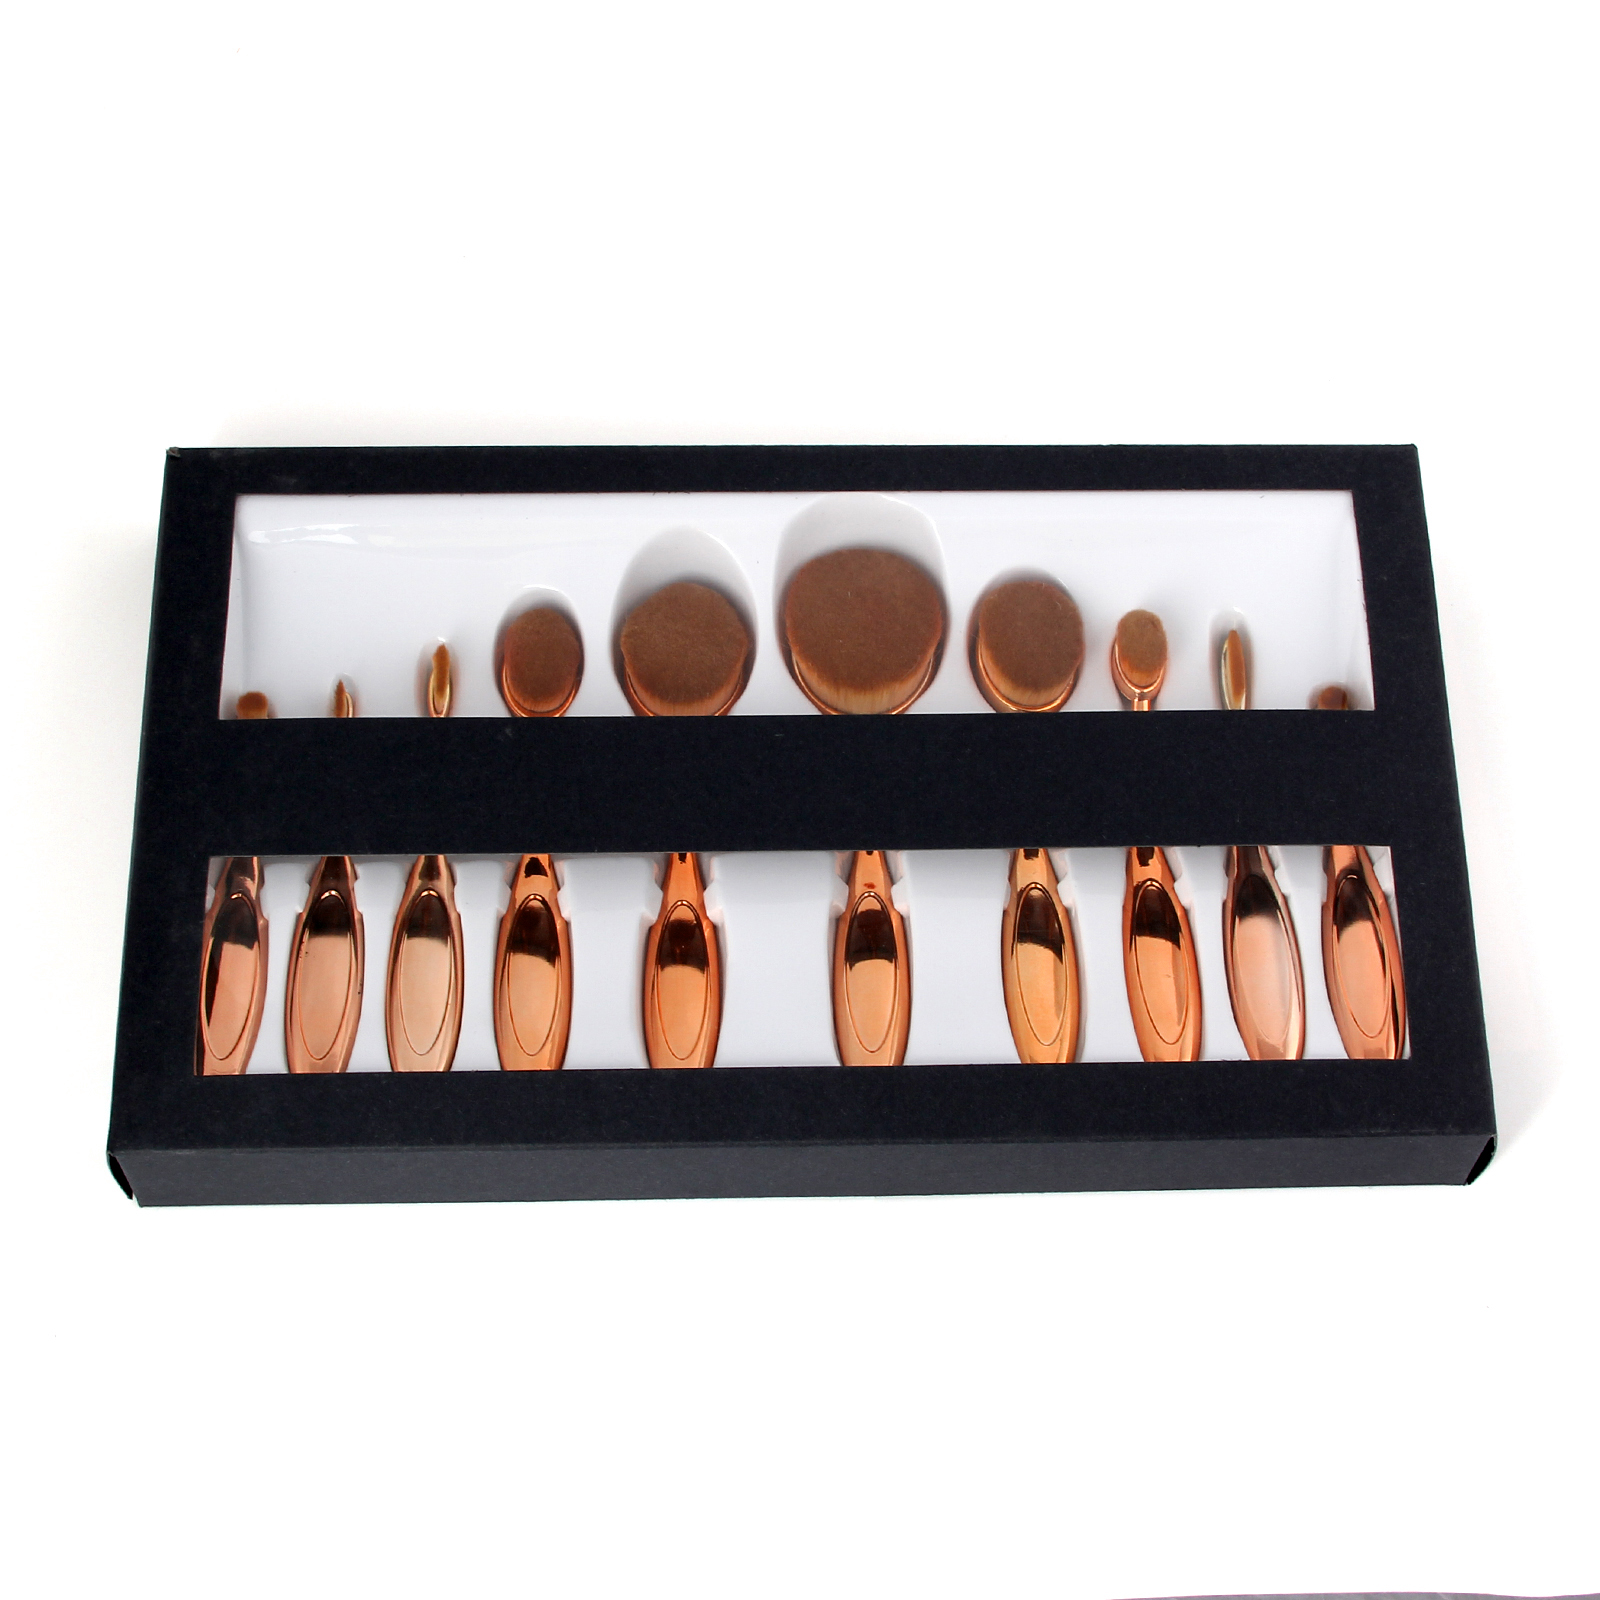 Rose Gold 10 pcs Fashionable Oval Makeup Brush Set, Facial Eyebrow Shadow foundation lip brush